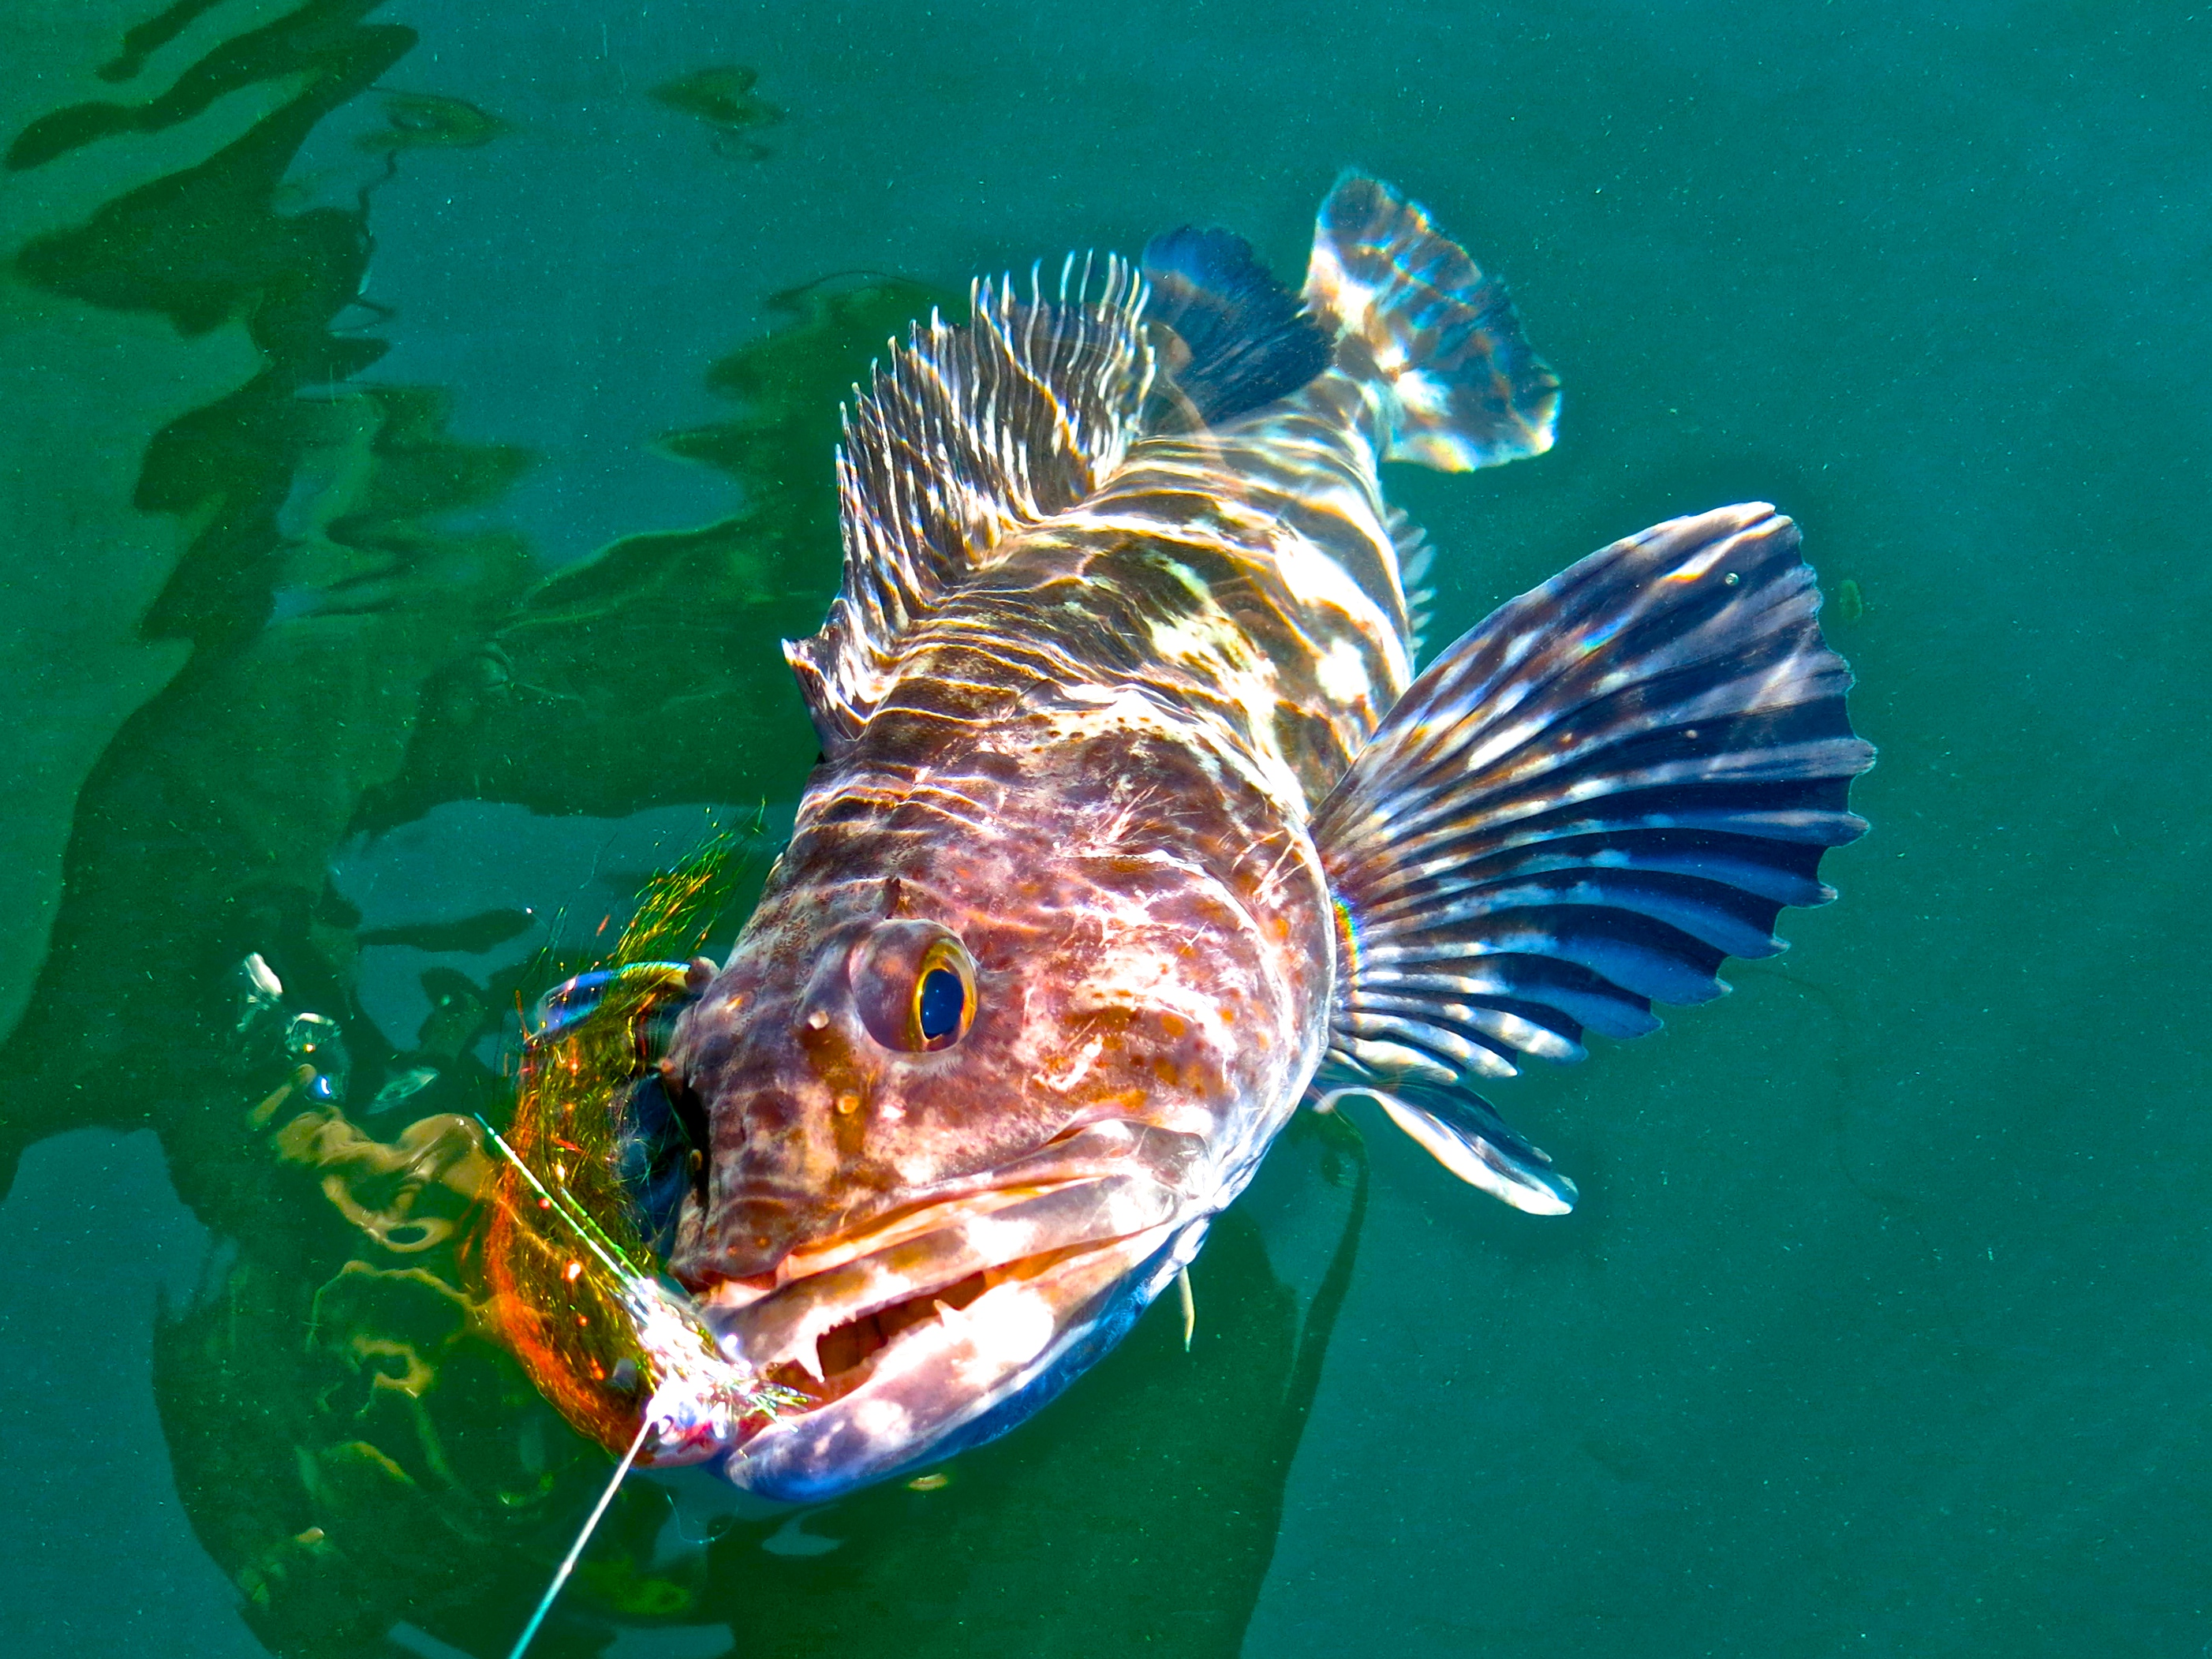 Update on pacific city lingcod fly fishing march 10 2015 for Deep sea fishing oregon coast